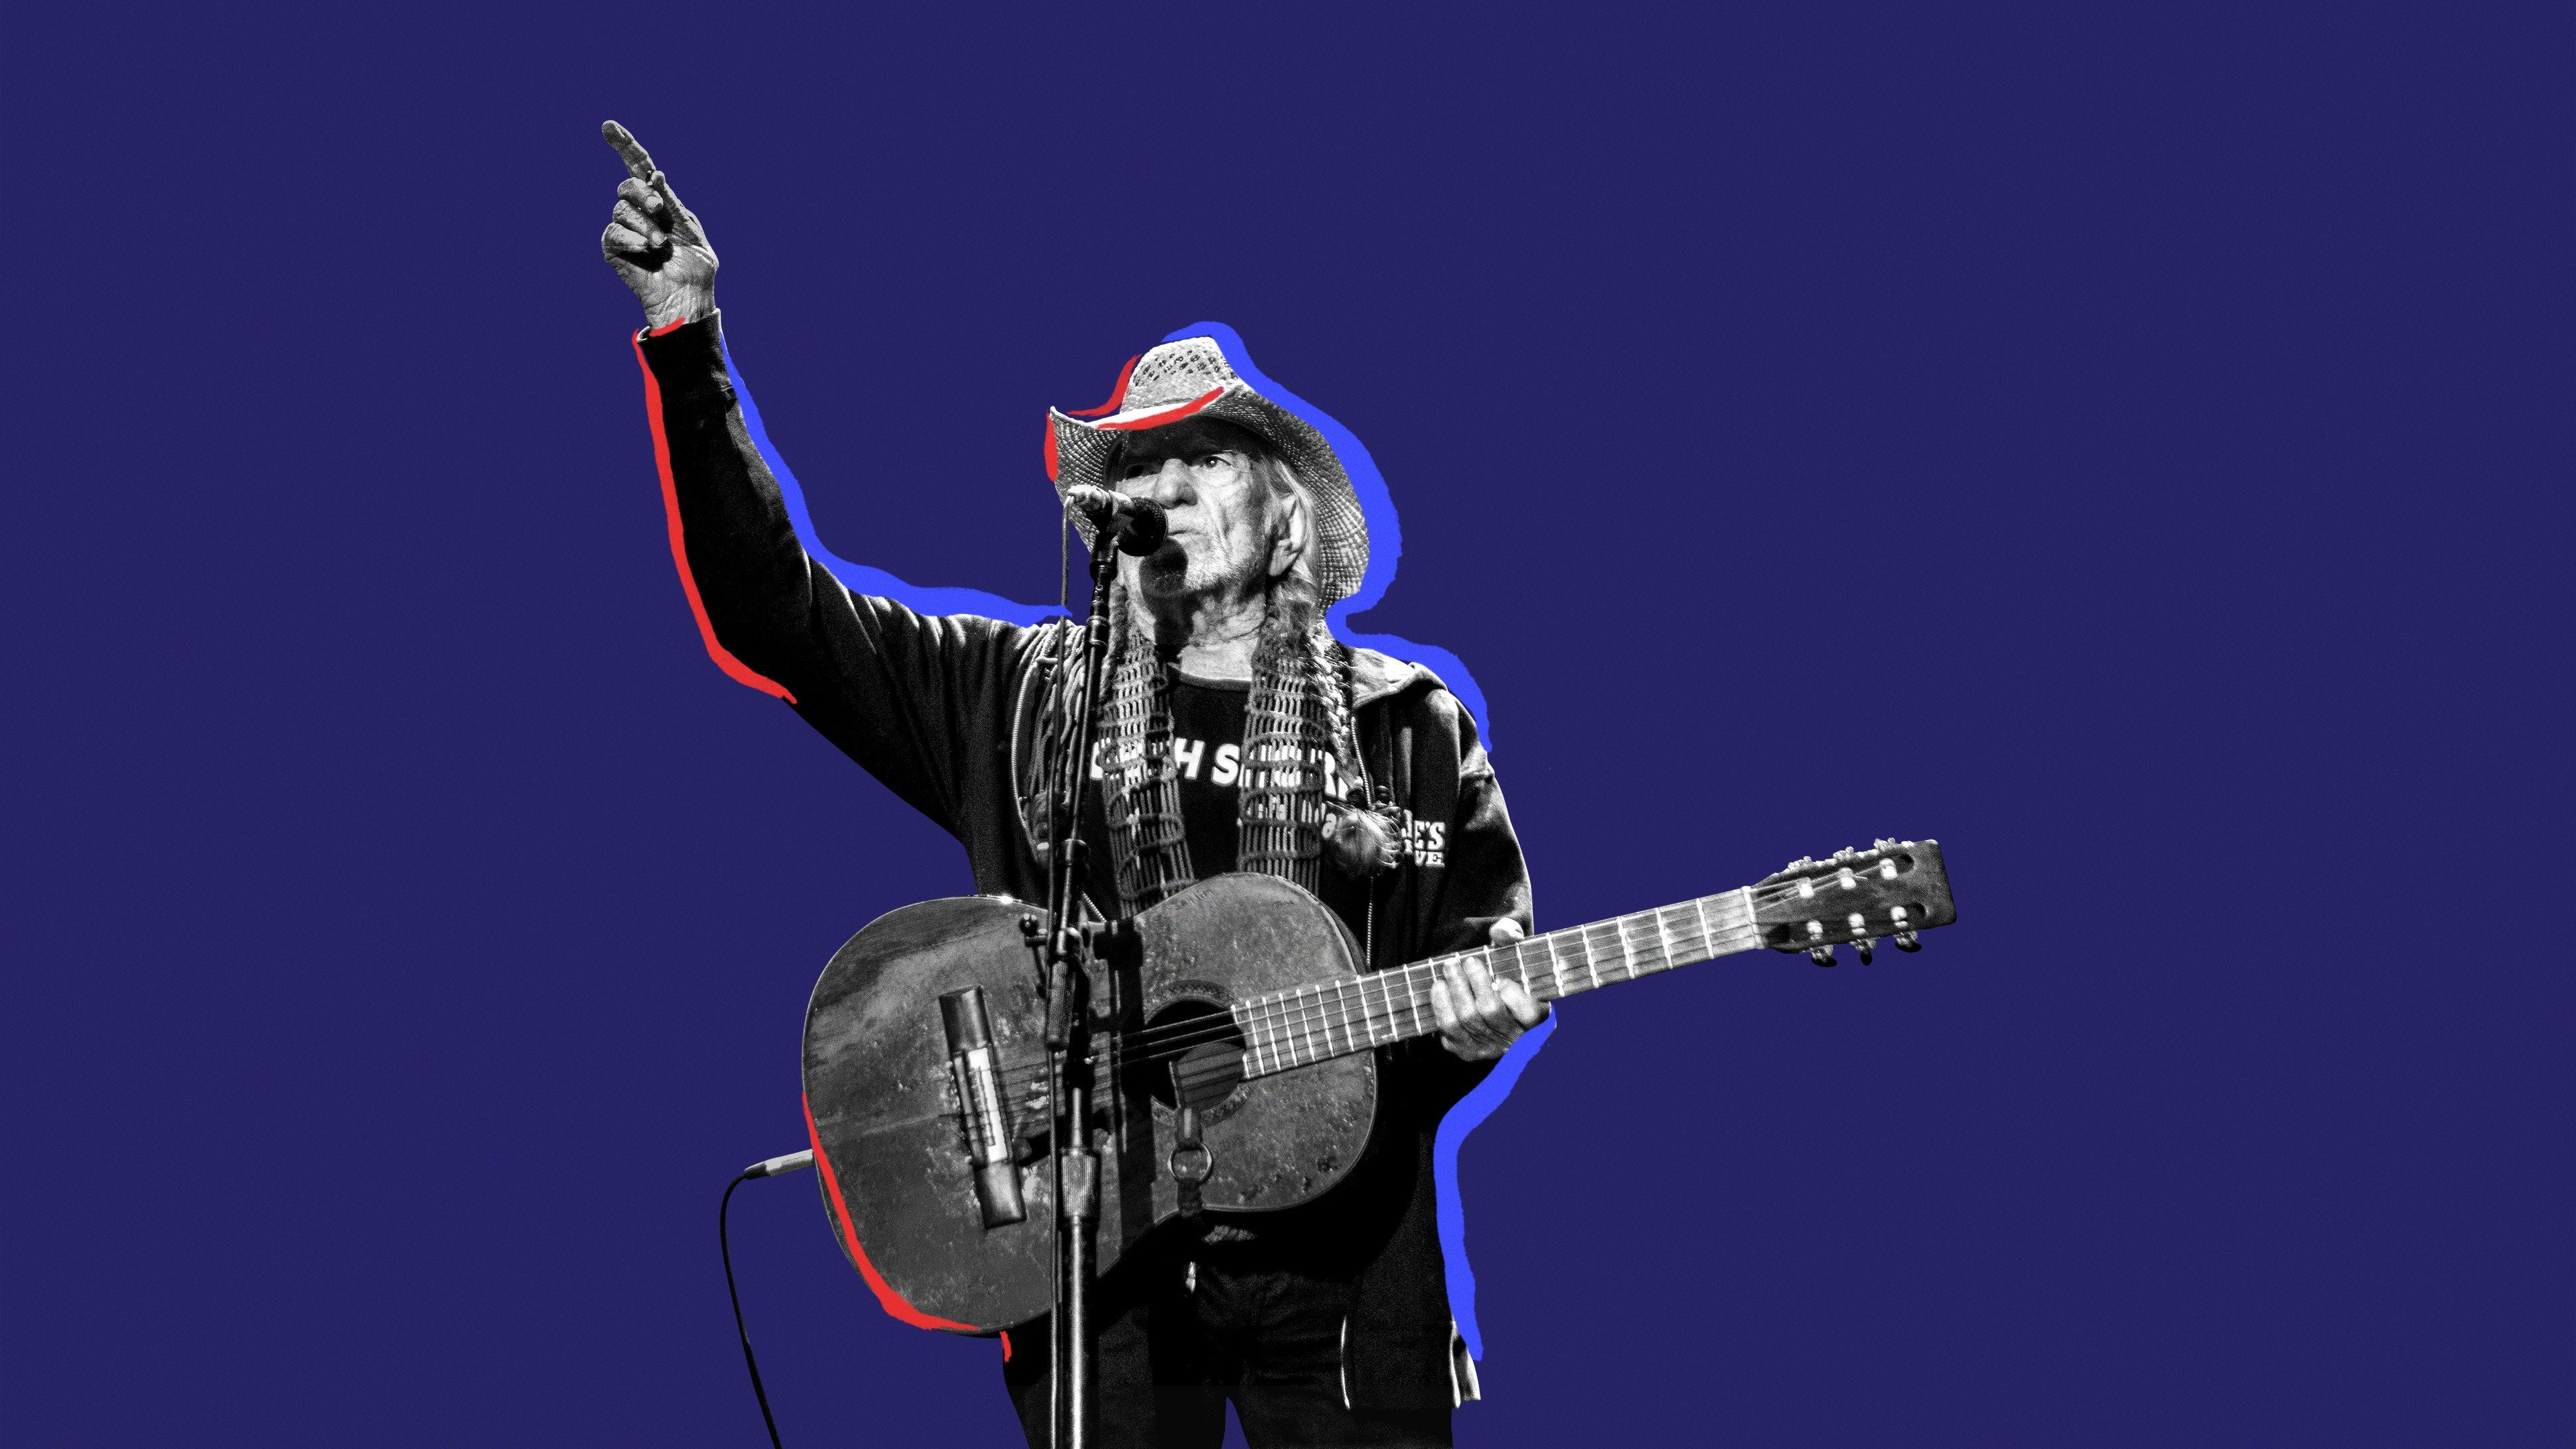 Willie Nelson: American Outlaw